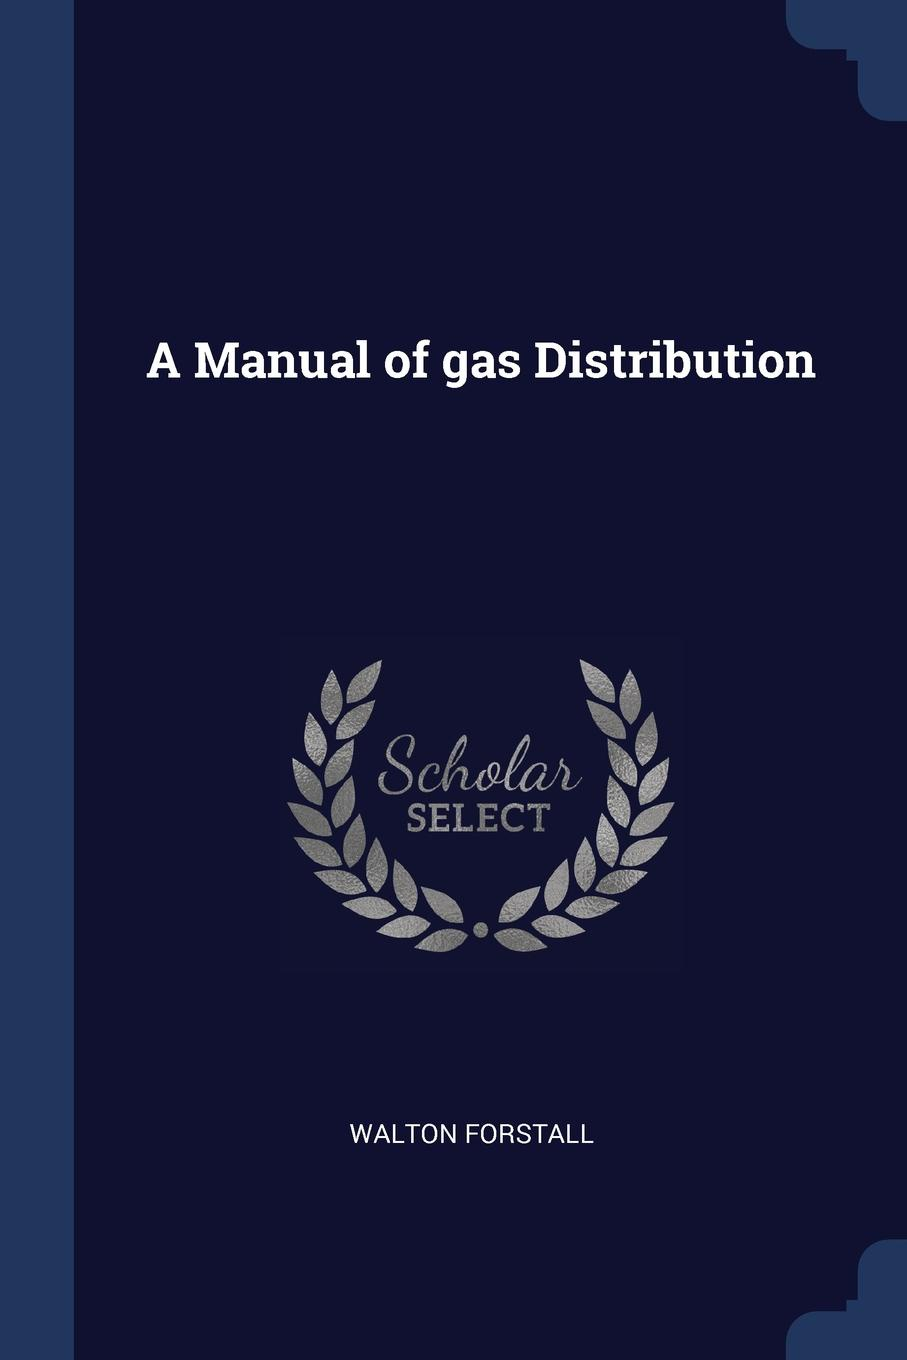 A Manual of gas Distribution. Walton Forstall